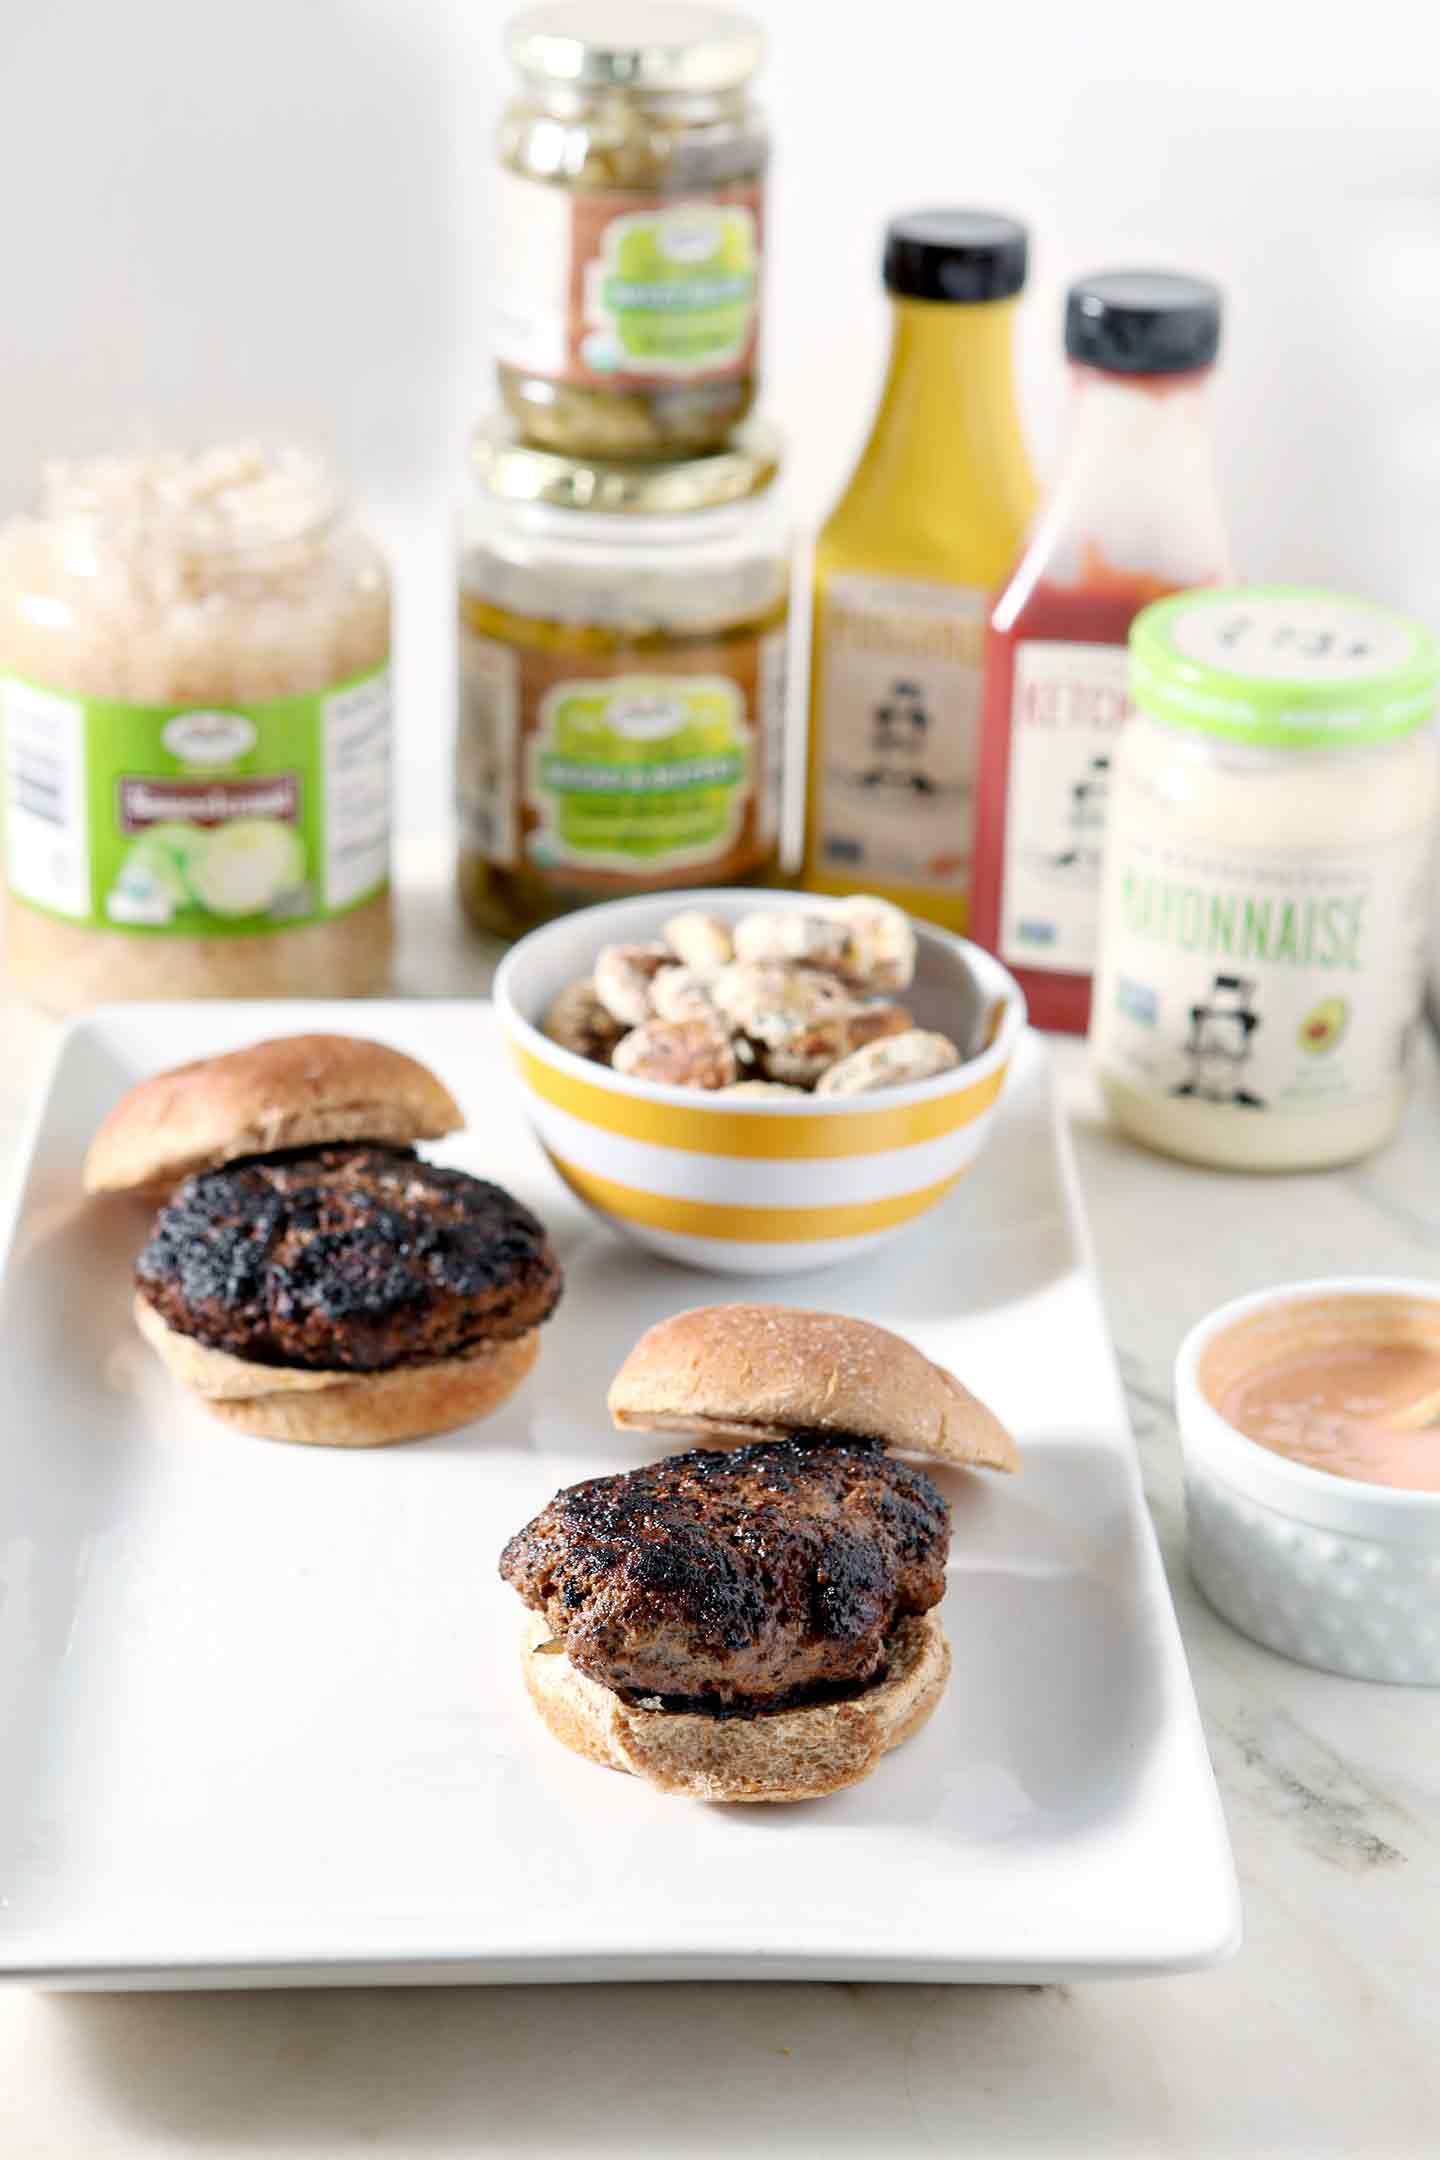 Up your burger game with Sweet and Sauer Burgers. Sauerkraut Burgers with Oven Fried Pickles and Sweet Sriracha Sauce are sure to be a hit this season! #ad #MyBestBurger